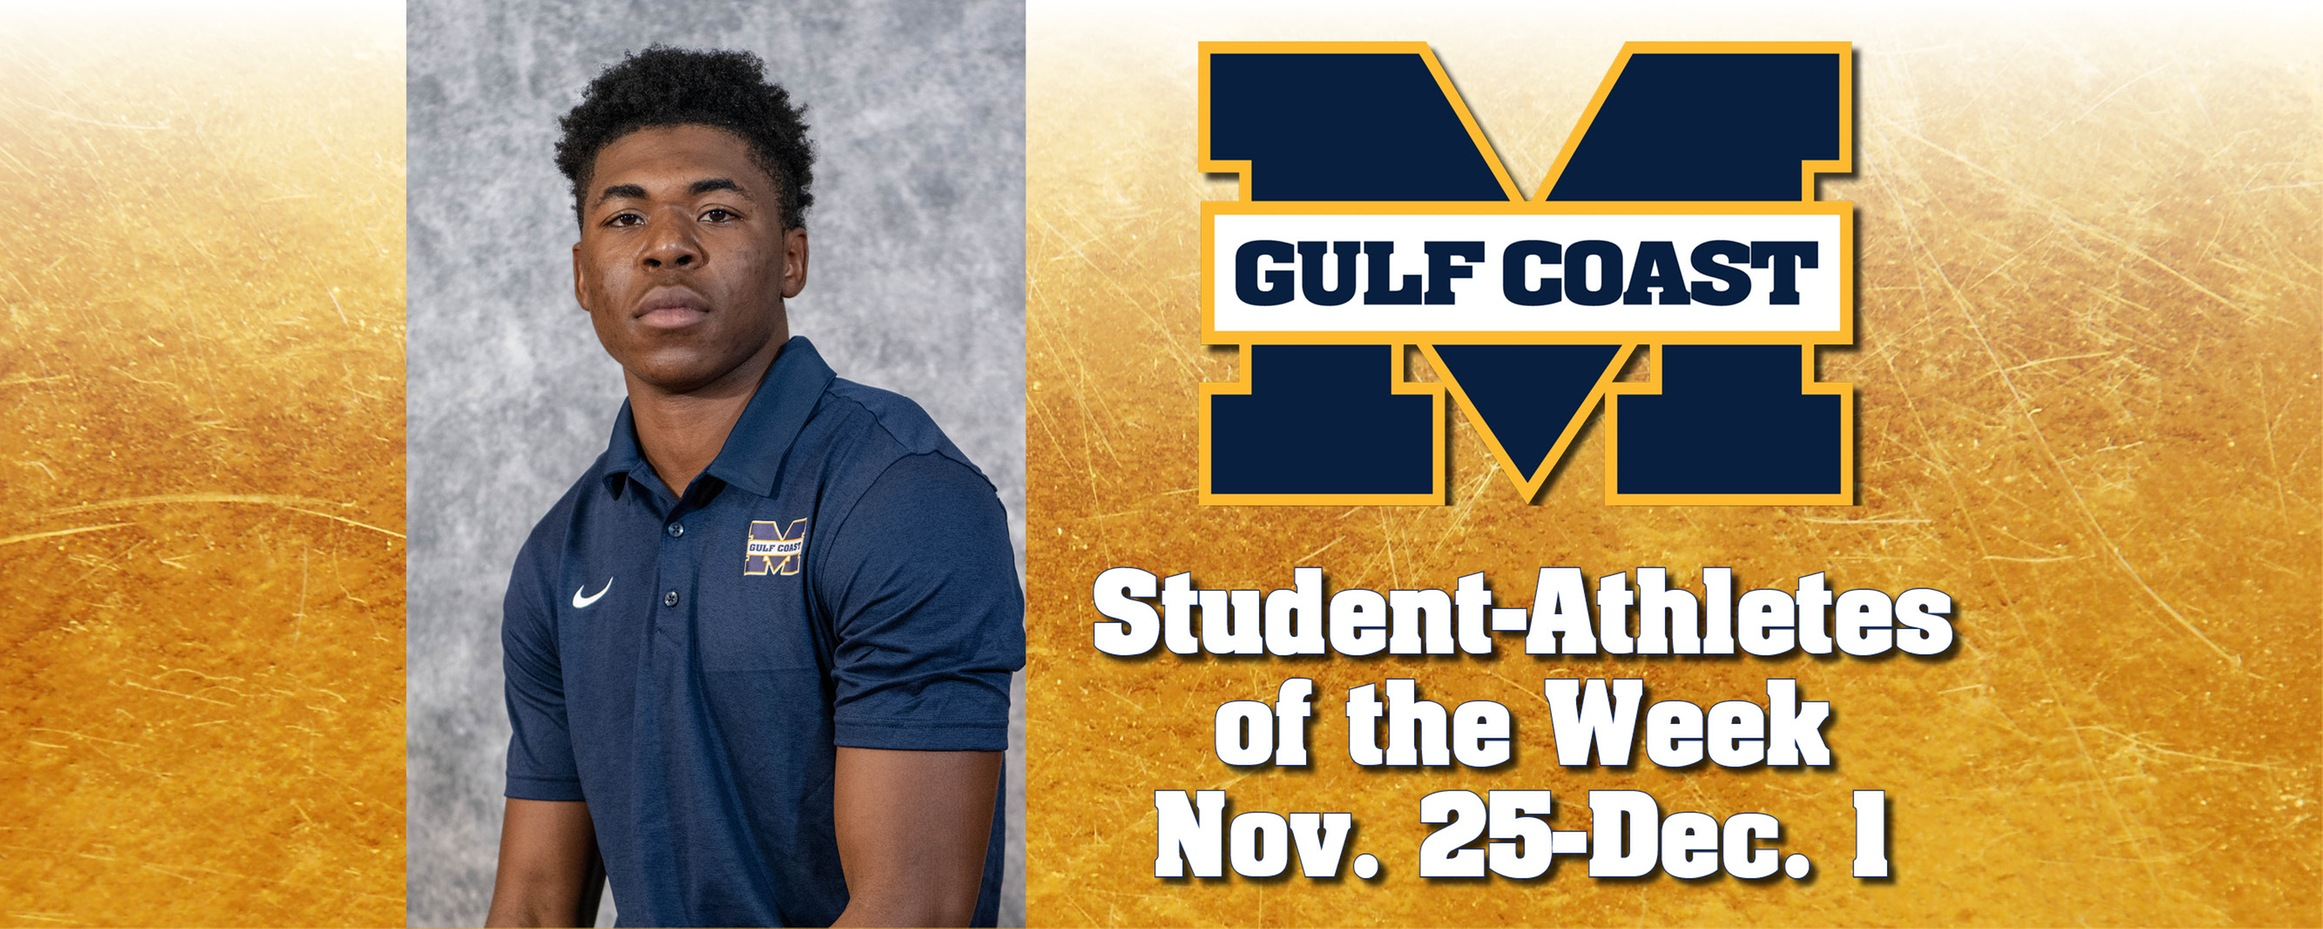 Harrison named MGCCC Student-Athlete of the Week